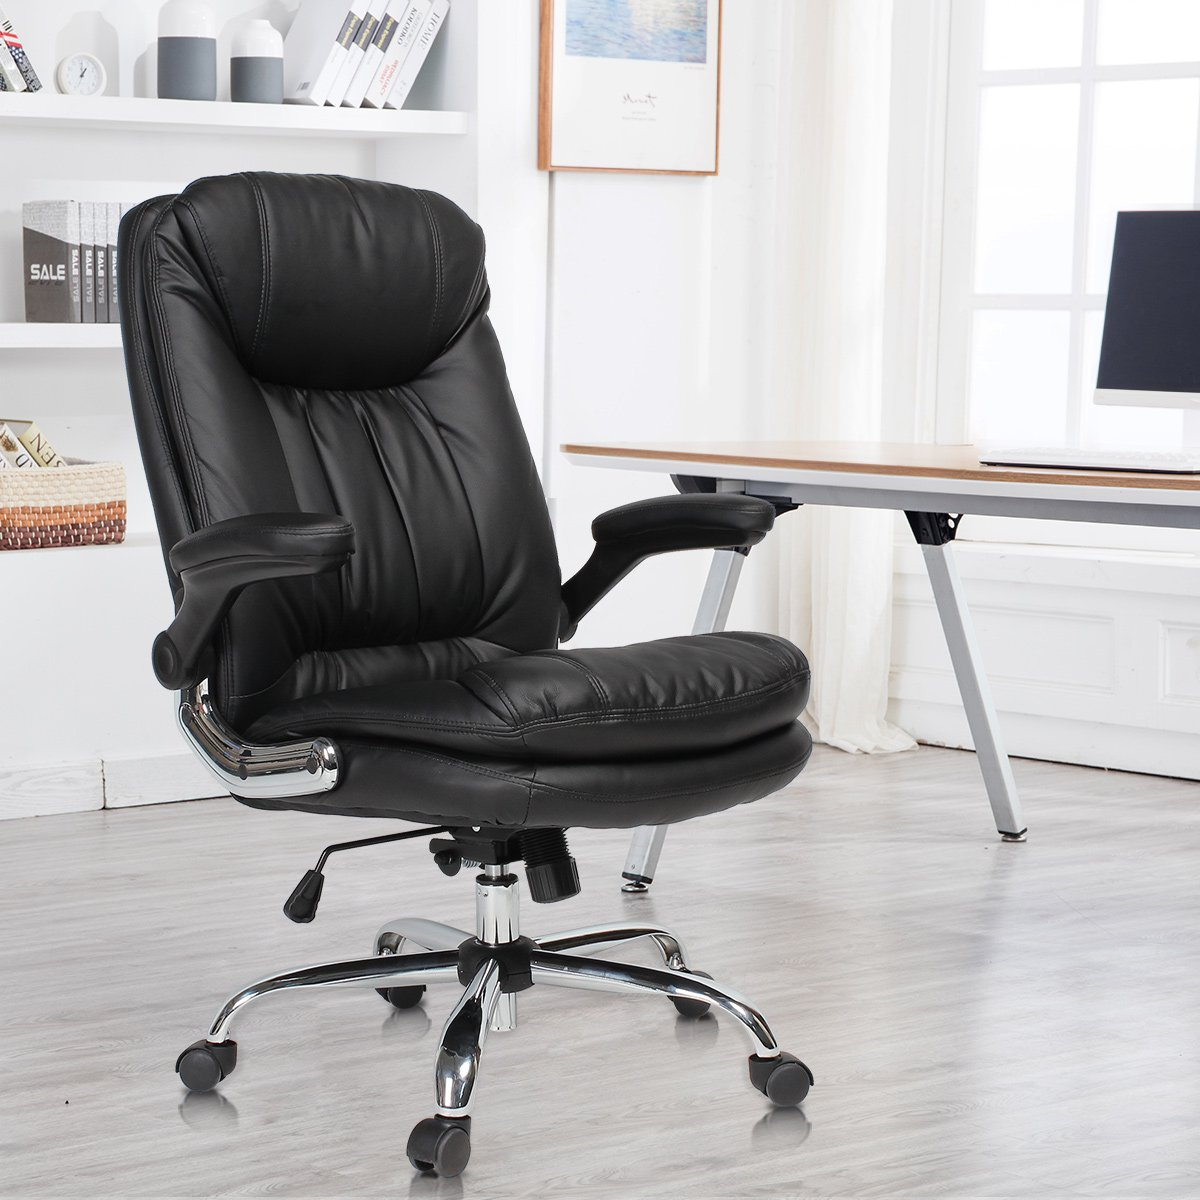 YAMASORO Ergonomic Office Chair with Flip-Up Arms and Comfy Headrest PU Leather High-Back Computer Desk Chair (black-3286) by YAMASORO